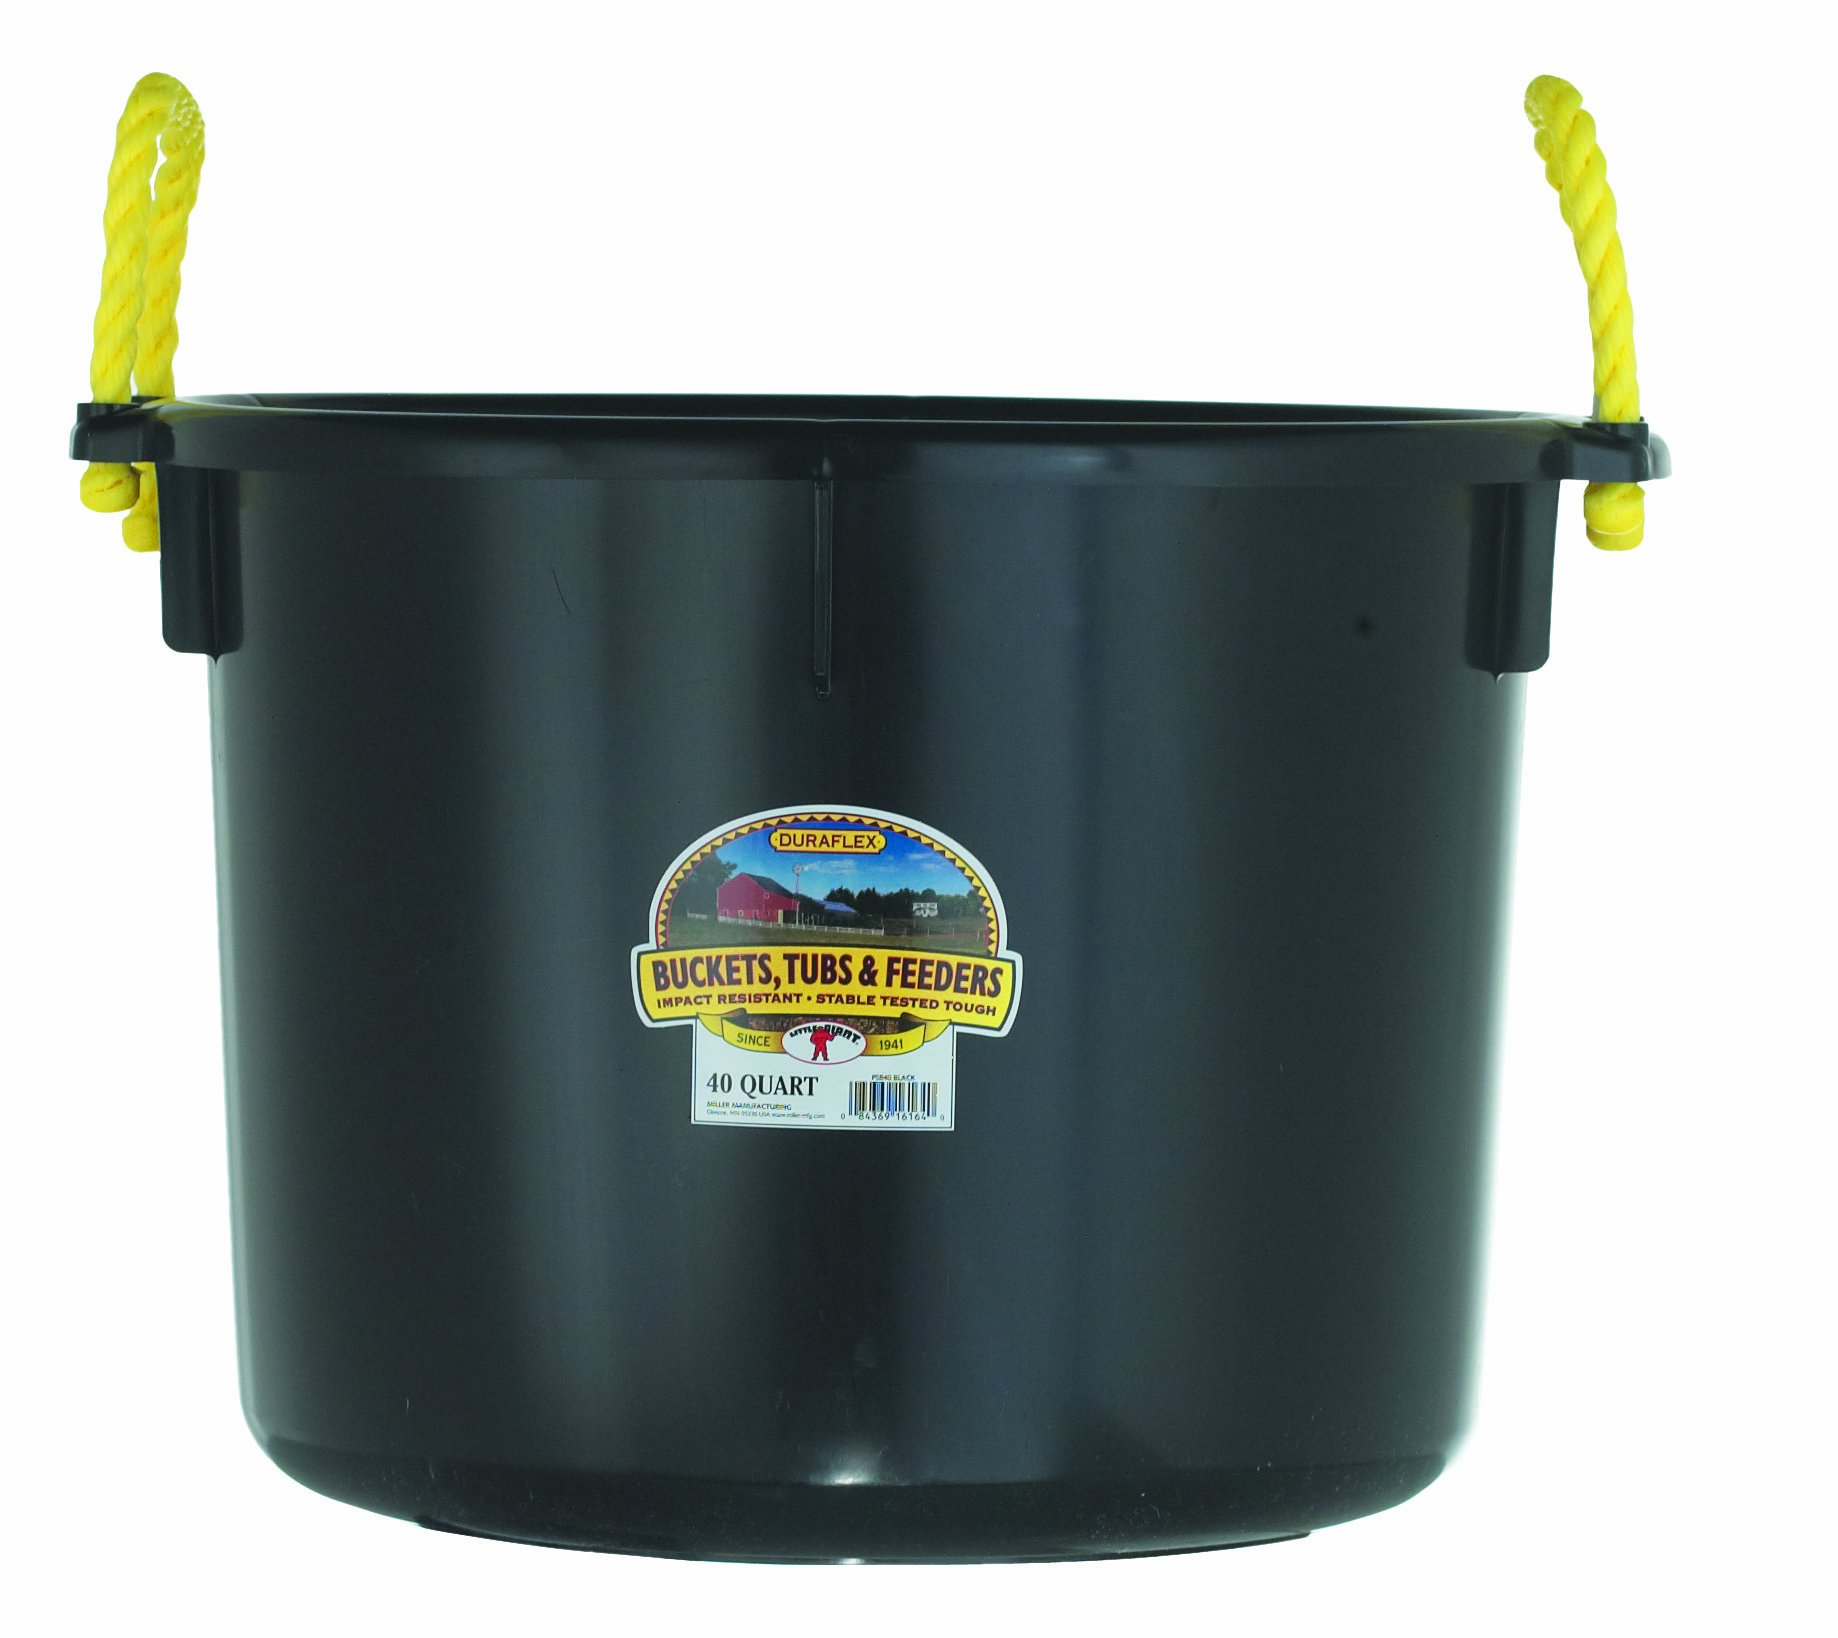 Little Giant Farm & Ag Miller Manufacturing PSB40BLACK 40-Quart Black Muck Tub by Little Giant Farm & Ag